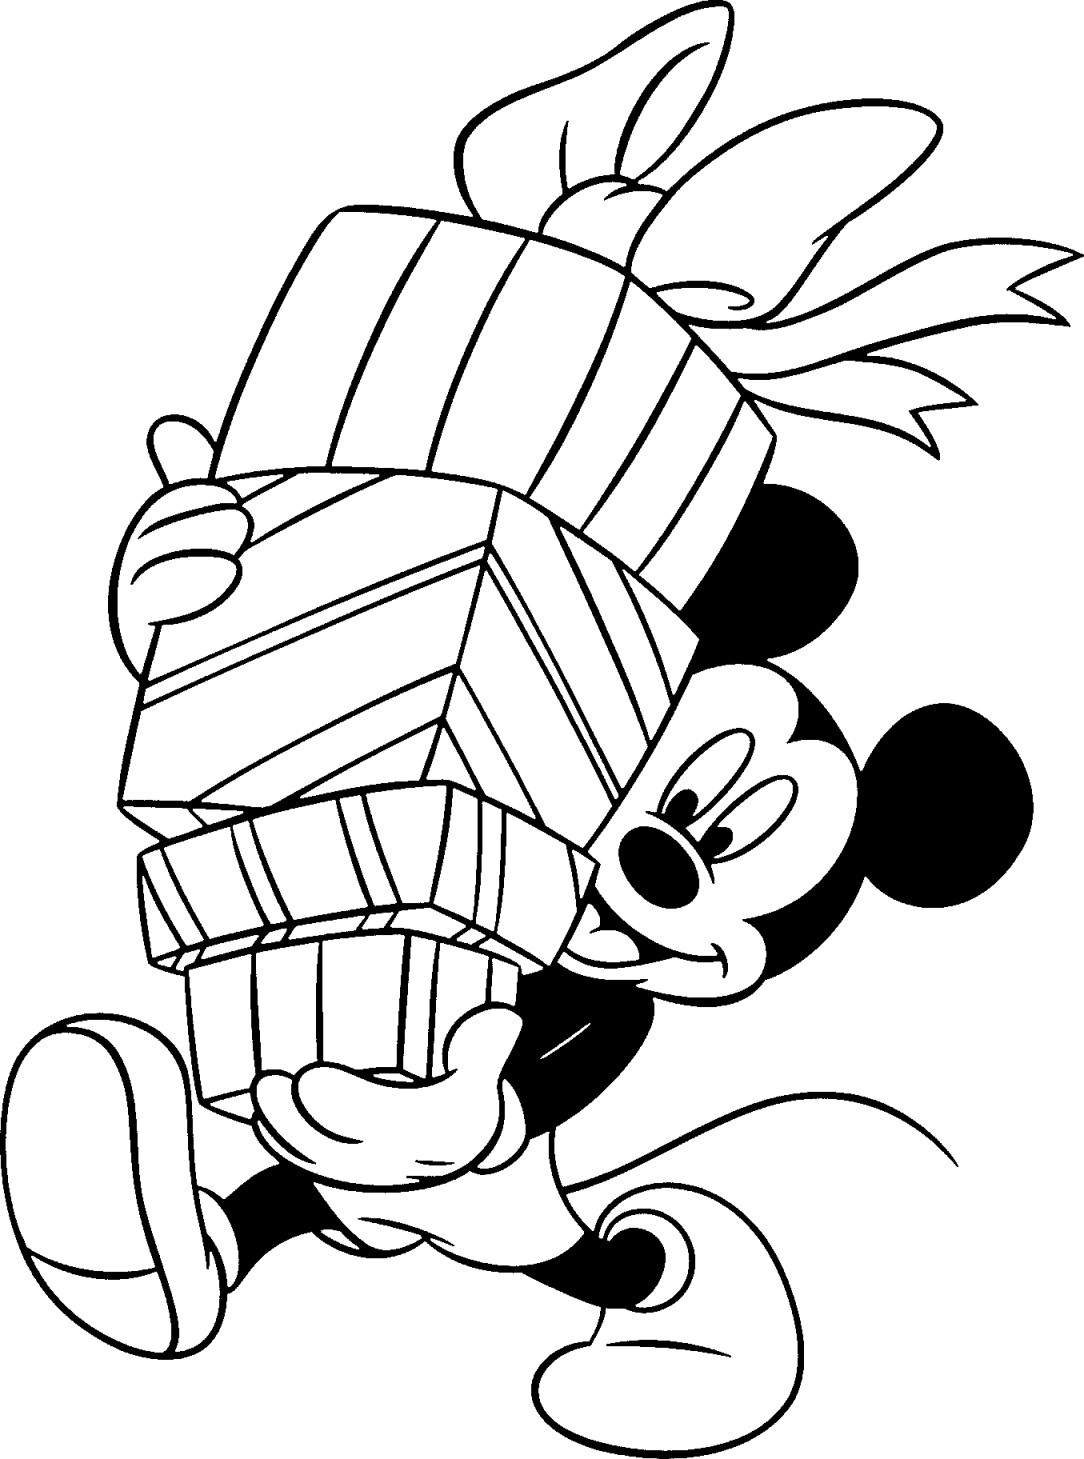 Christmas Coloring Sheets Printable Free With Disney Pages For Kids Honey Lime